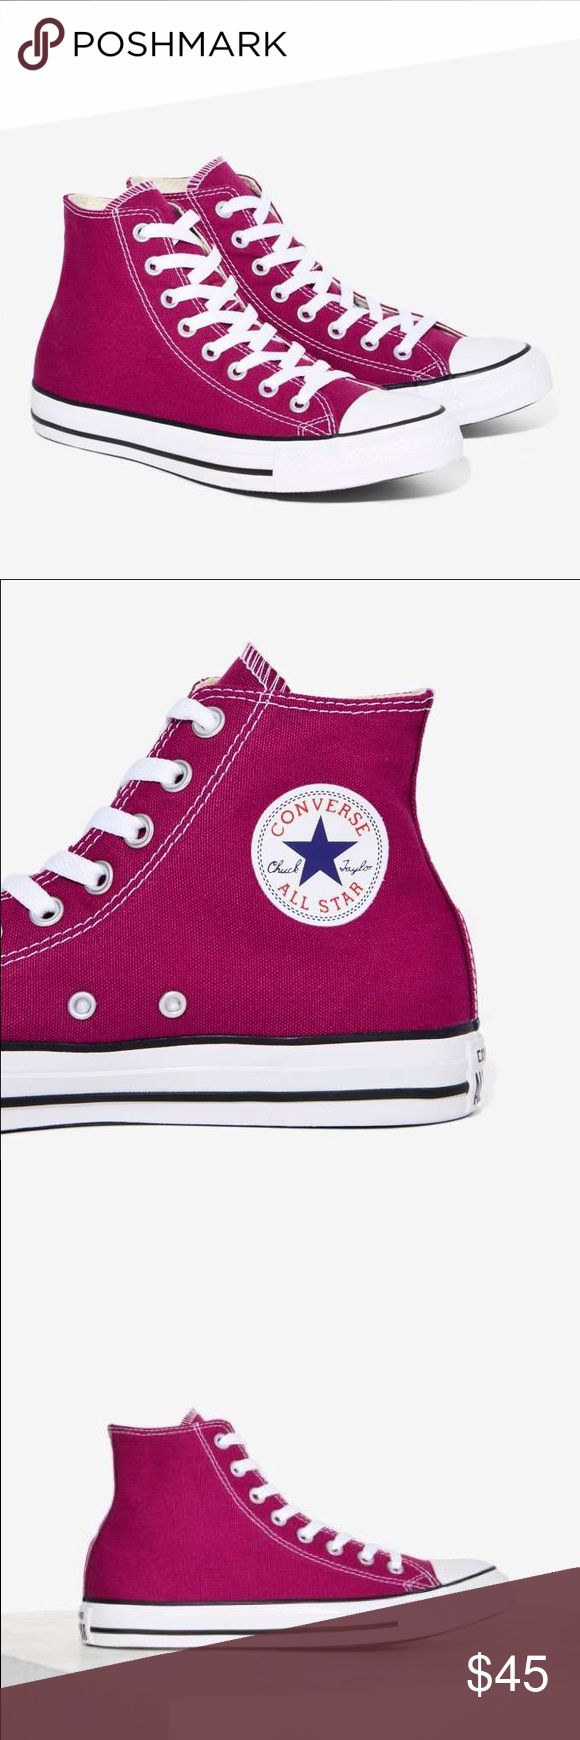 """Converse Chuck Taylor Pink Sapphire Hi Tops These Chucks are so classic, they'll never go out of style. These magenta high-top sneakers feature contrast white laces, a rubber sole, and a lace-up front. Throw 'em on with jeans, a skirt, or even a vintage dress--these shoes go with literally everything. By Converse. *Canvas*5.5""""/14cm shoe height*1""""/2.5cm platform height*True to size***PRICE FIRM***SOLD OUT*** Converse Shoes Sneakers"""